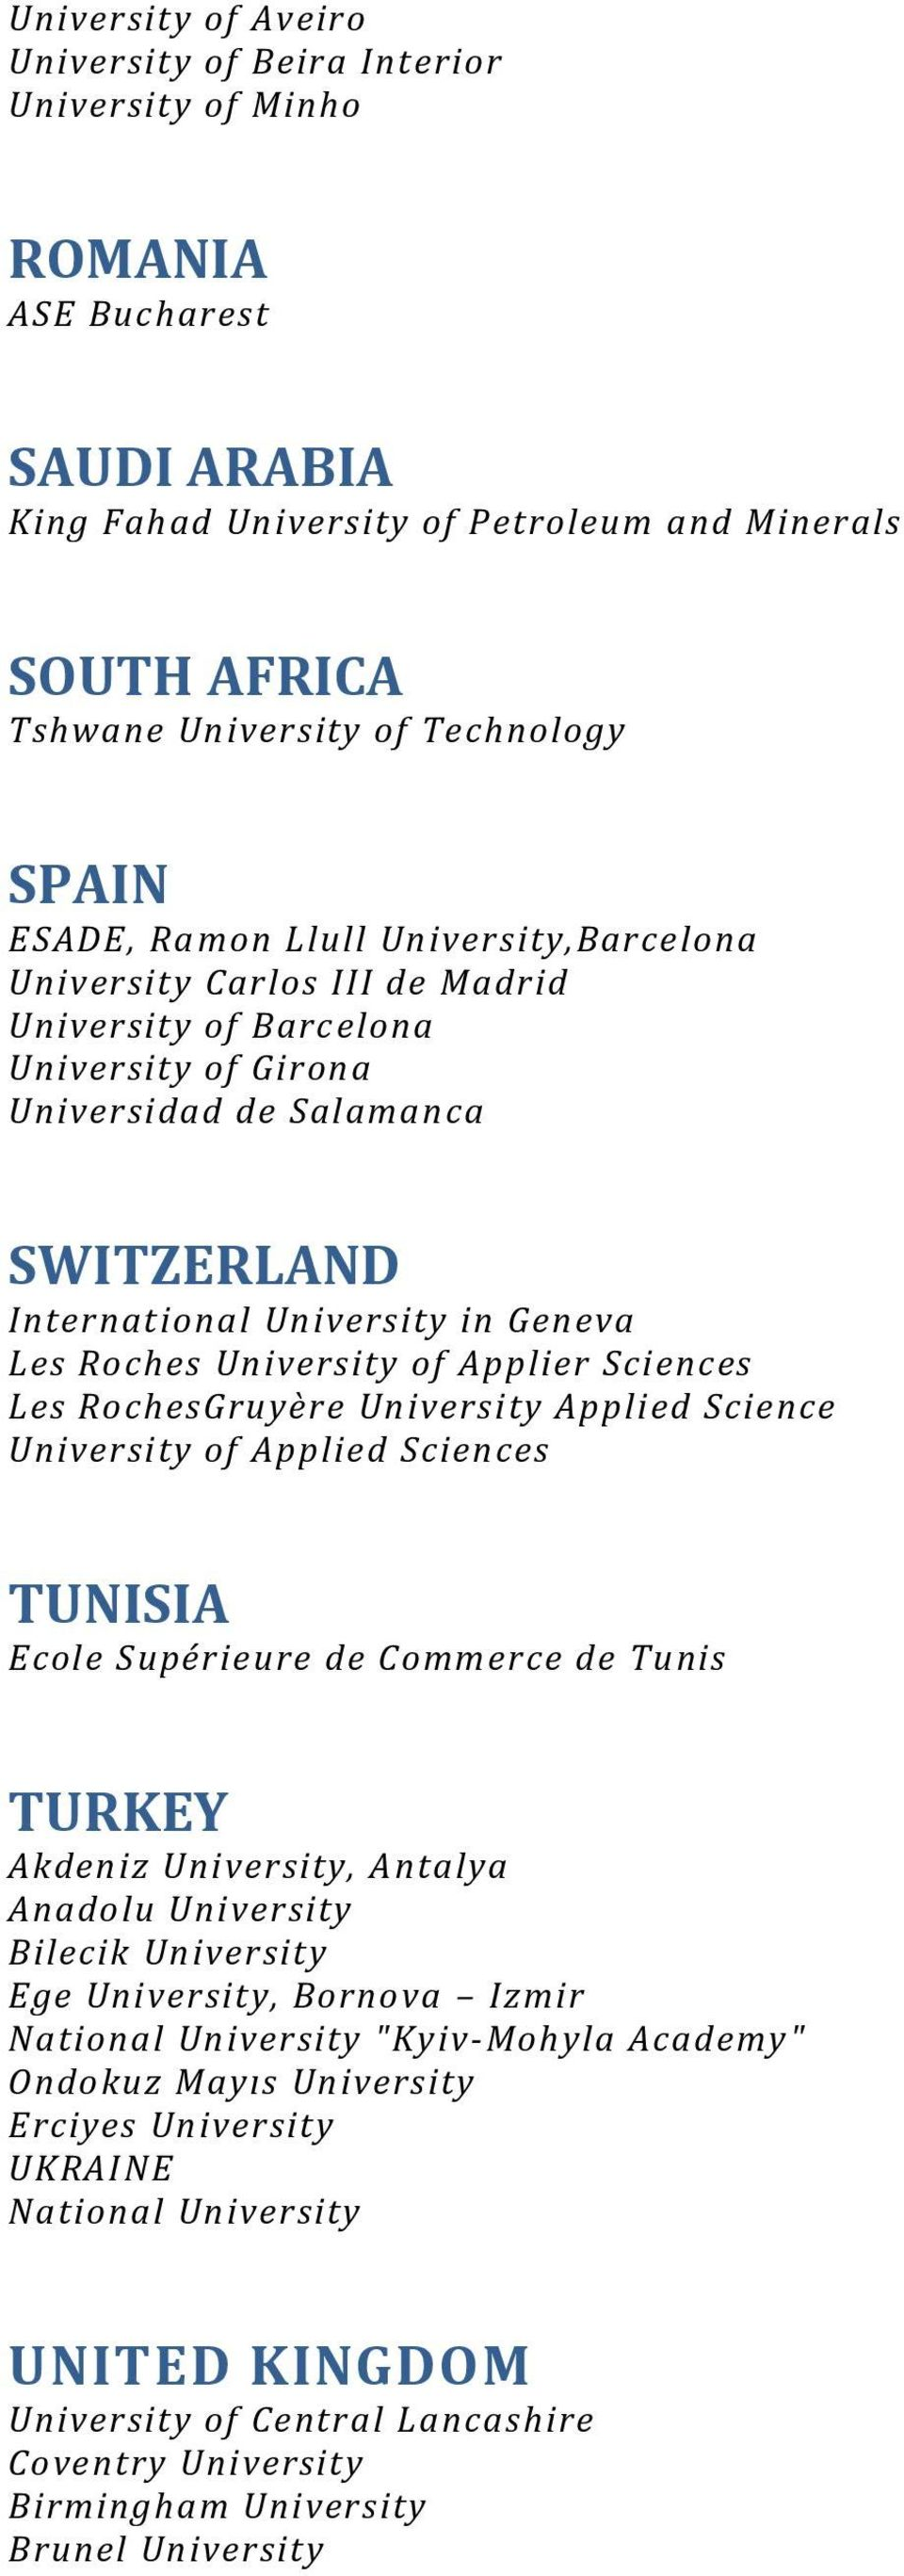 Roches University of Applier Sciences Les RochesGruyère University Applied Science University of Applied Sciences TUNISIA Ecole Supérieure de Commerce de Tunis TURKEY Akdeniz University, Antalya